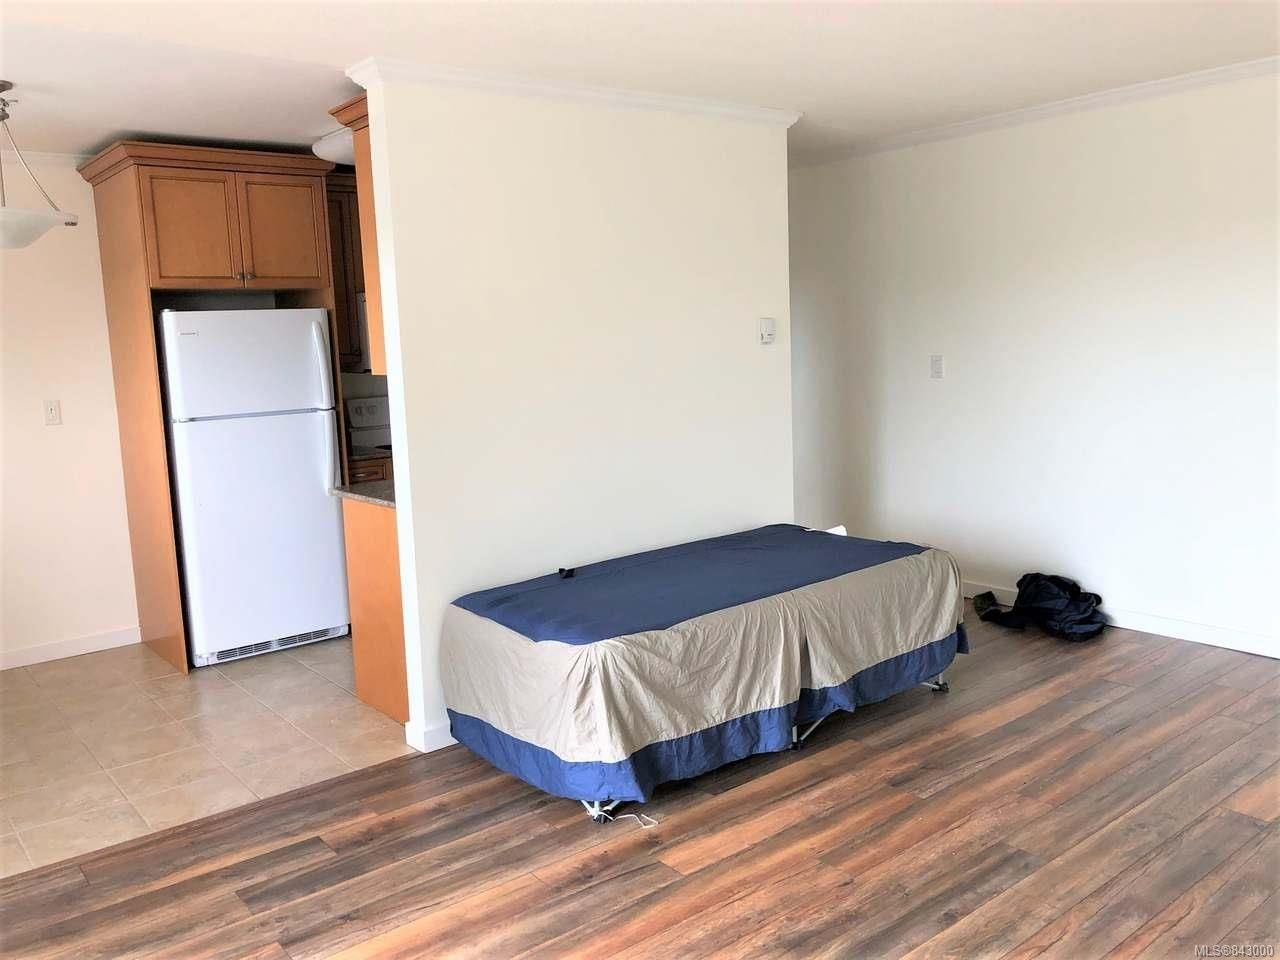 Photo 16: Photos: 405 255 W Hirst Ave in PARKSVILLE: PQ Parksville Condo for sale (Parksville/Qualicum)  : MLS®# 843000